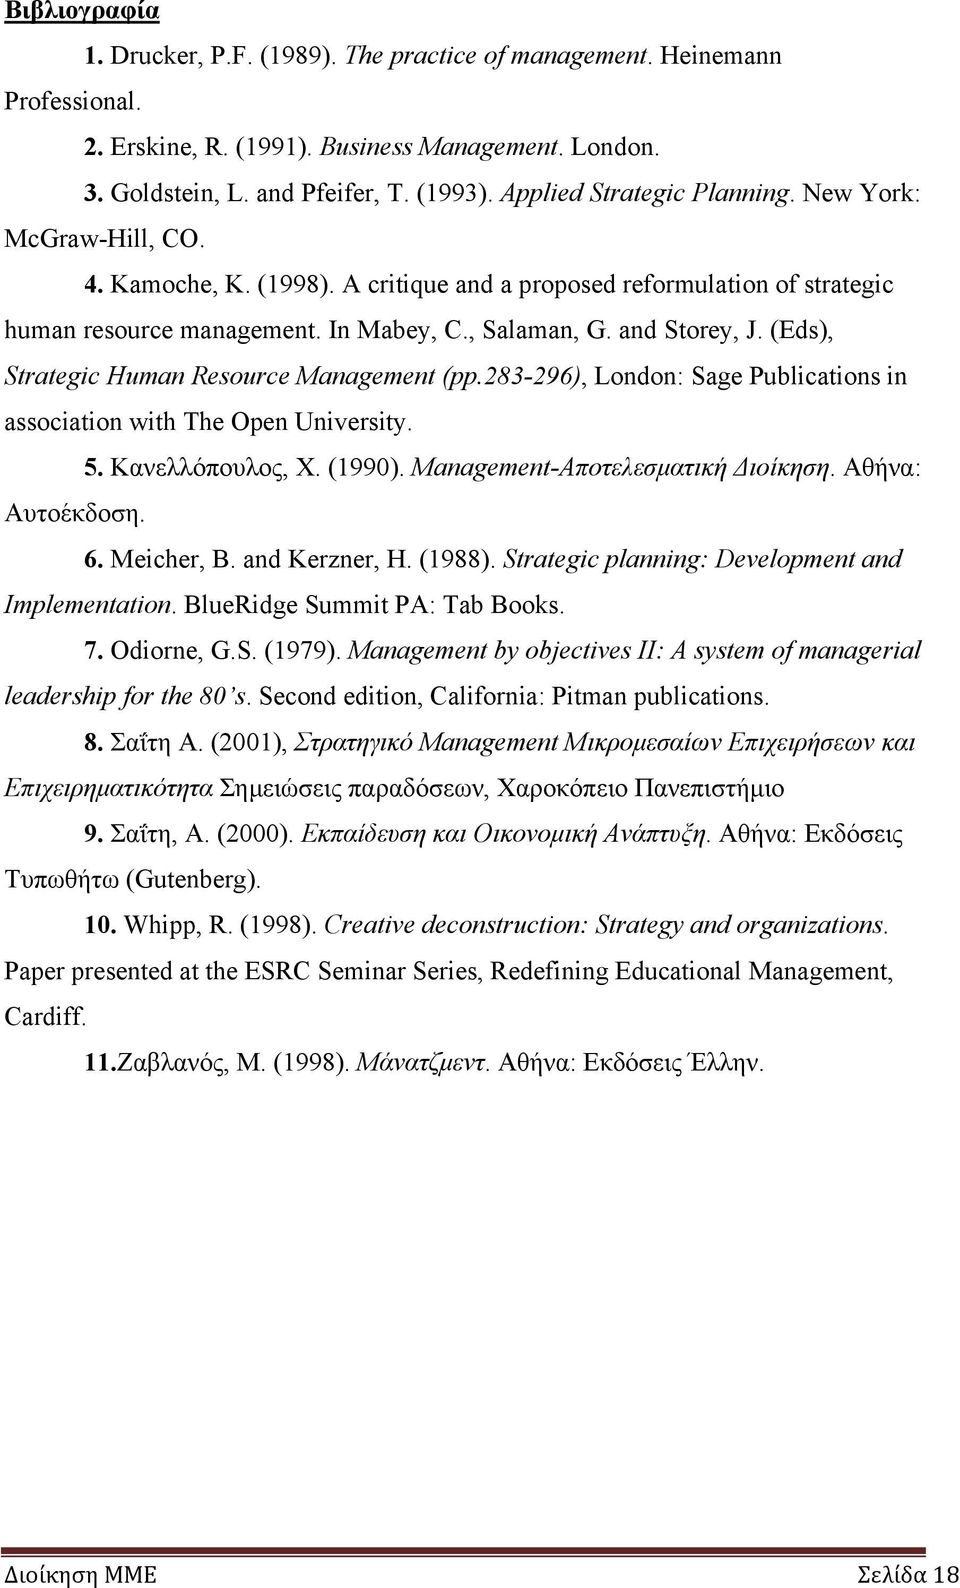 (Eds), Strategic Human Resource Management (pp.283-296), London: Sage Publications in association with The Open University. 5. Κανελλόπουλος, Χ. (1990). Management-Αποτελεσματική Διοίκηση.